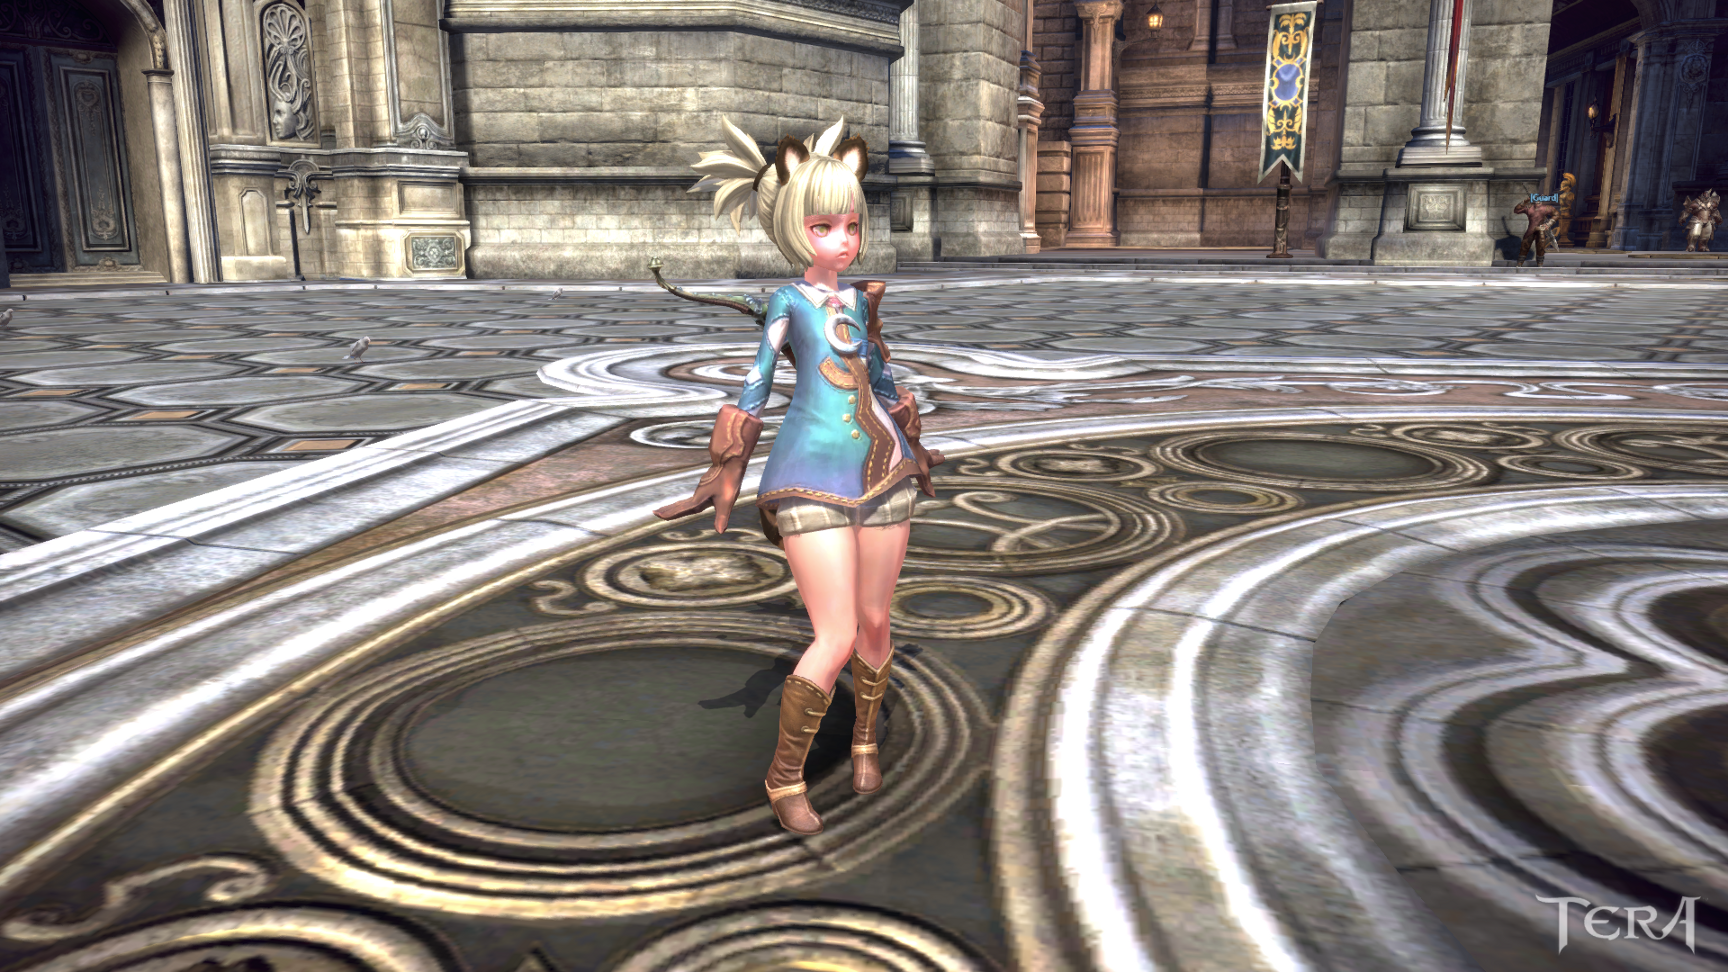 jigglyjam games opening gameplay trailer experience preview online media removed heres tera